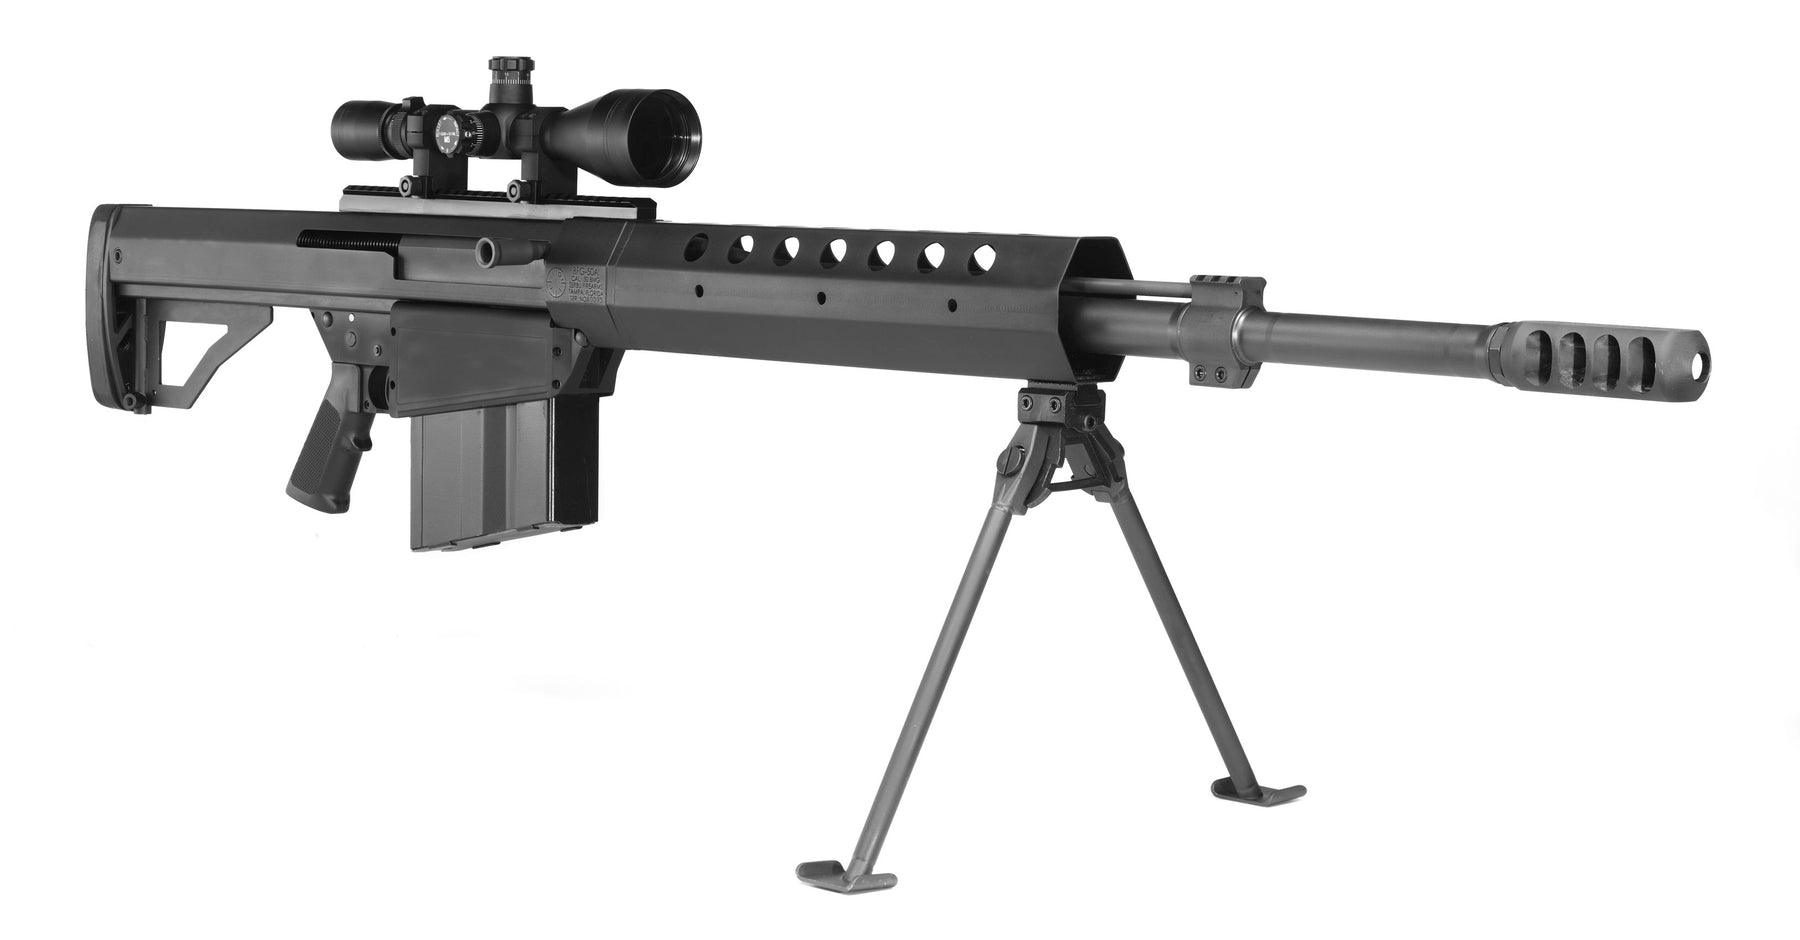 50 Caliber Sniper Rifle With Silencer